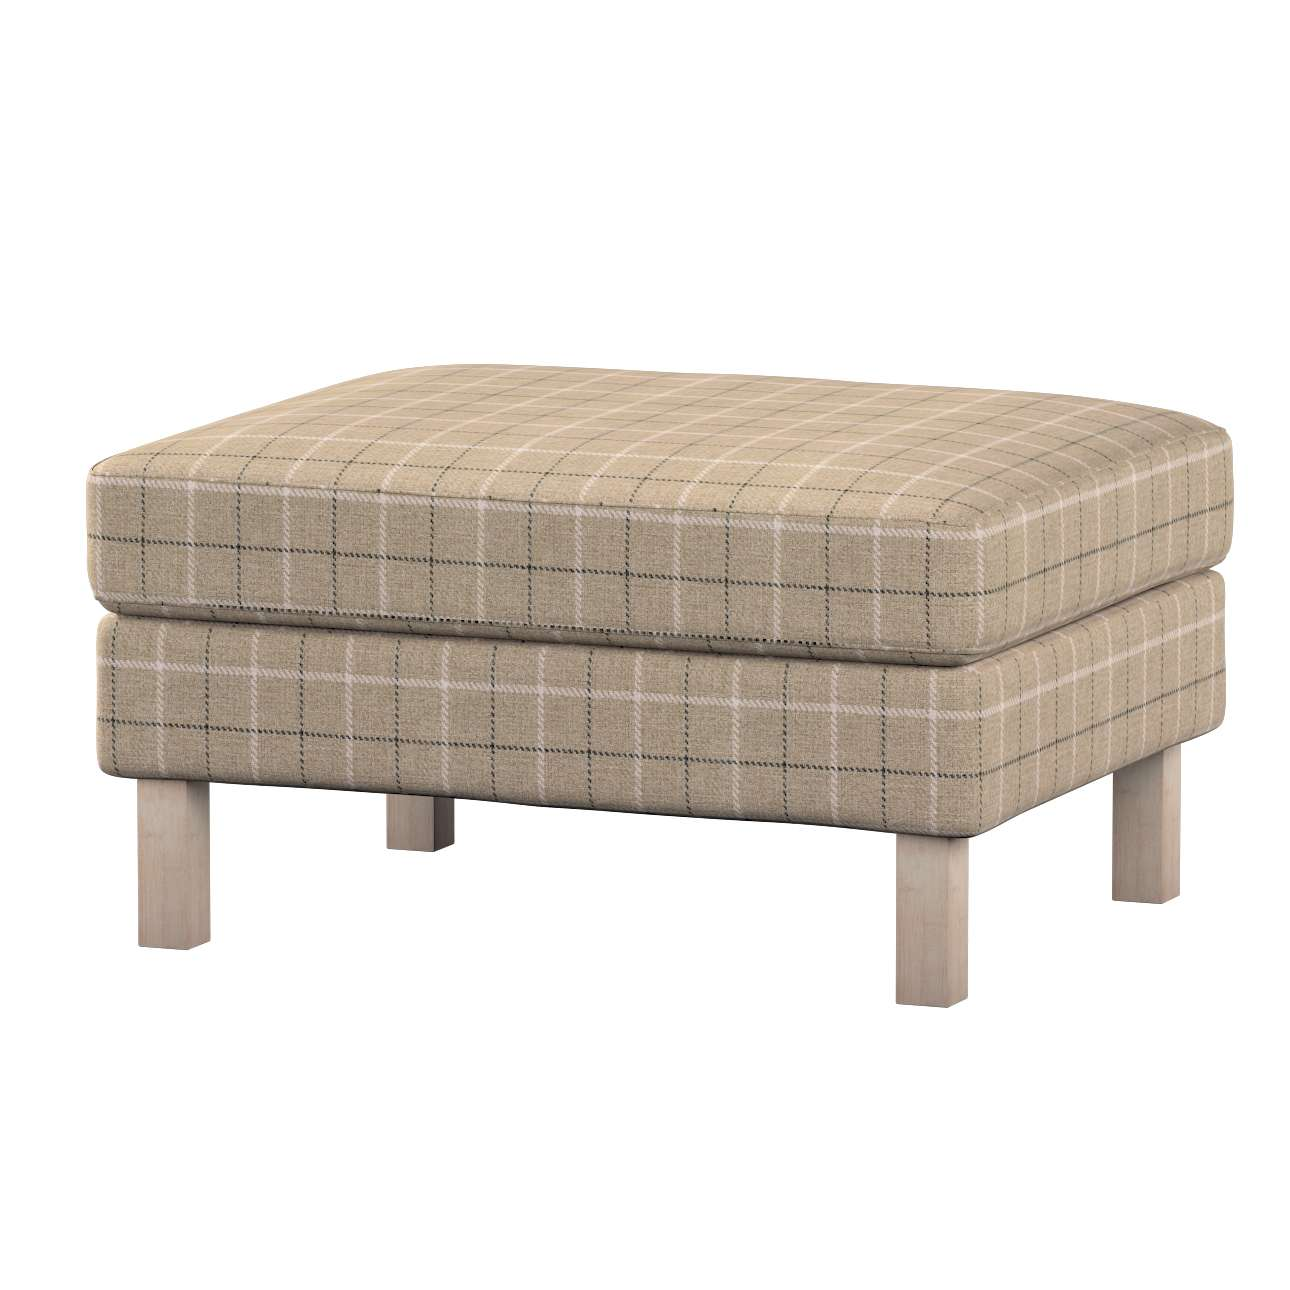 Karlstad footstool cover Karlstad footstool cover in collection Edinburgh, fabric: 703-10